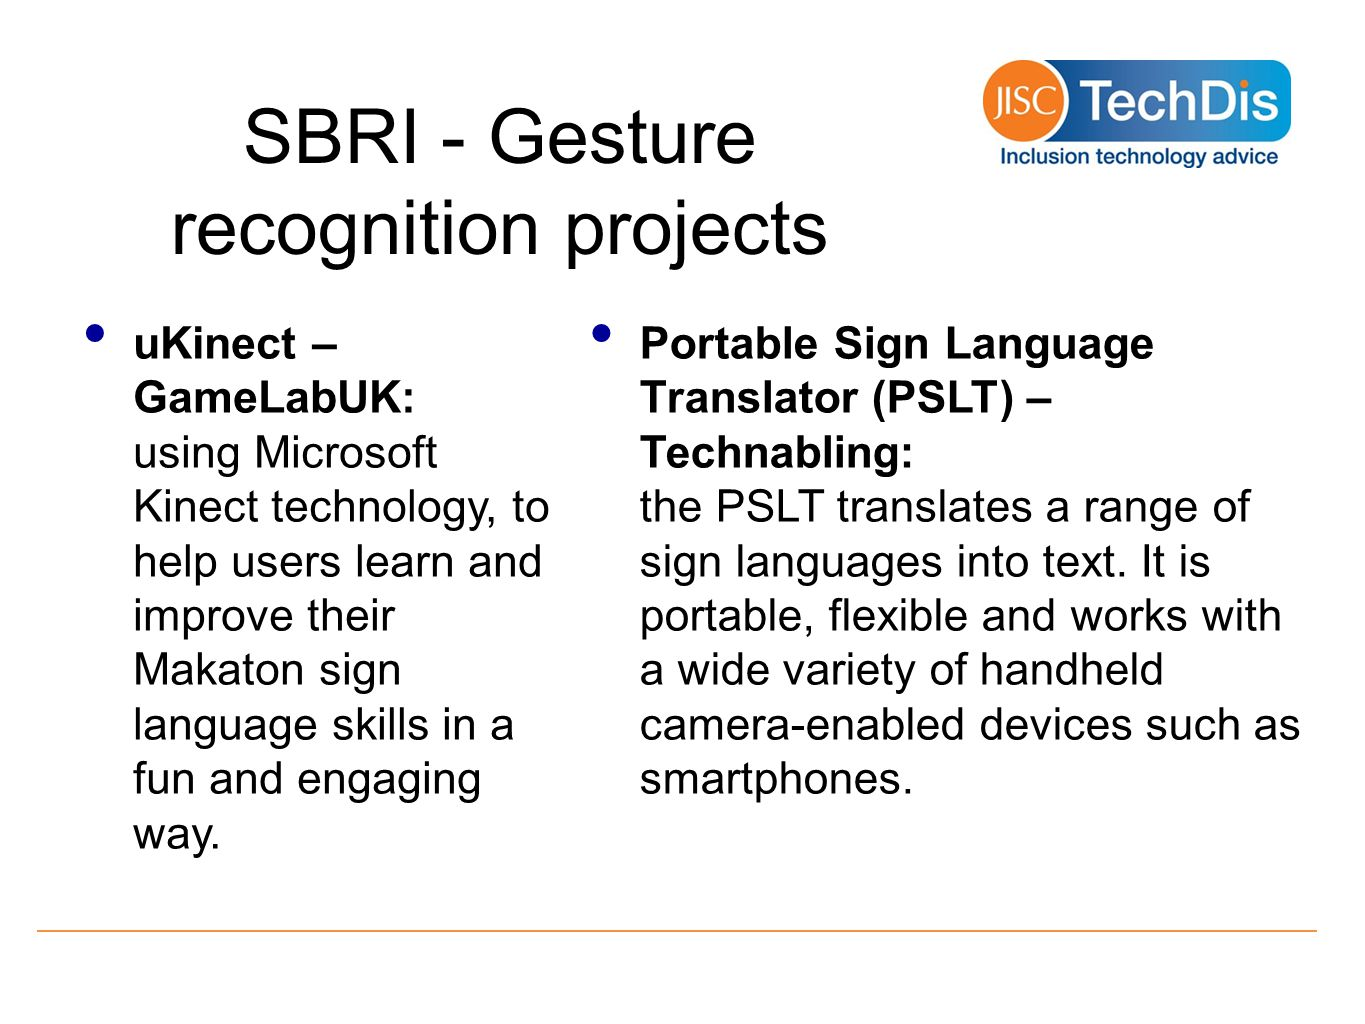 SBRI - Gesture recognition projects uKinect – GameLabUK: using Microsoft Kinect technology, to help users learn and improve their Makaton sign language skills in a fun and engaging way.